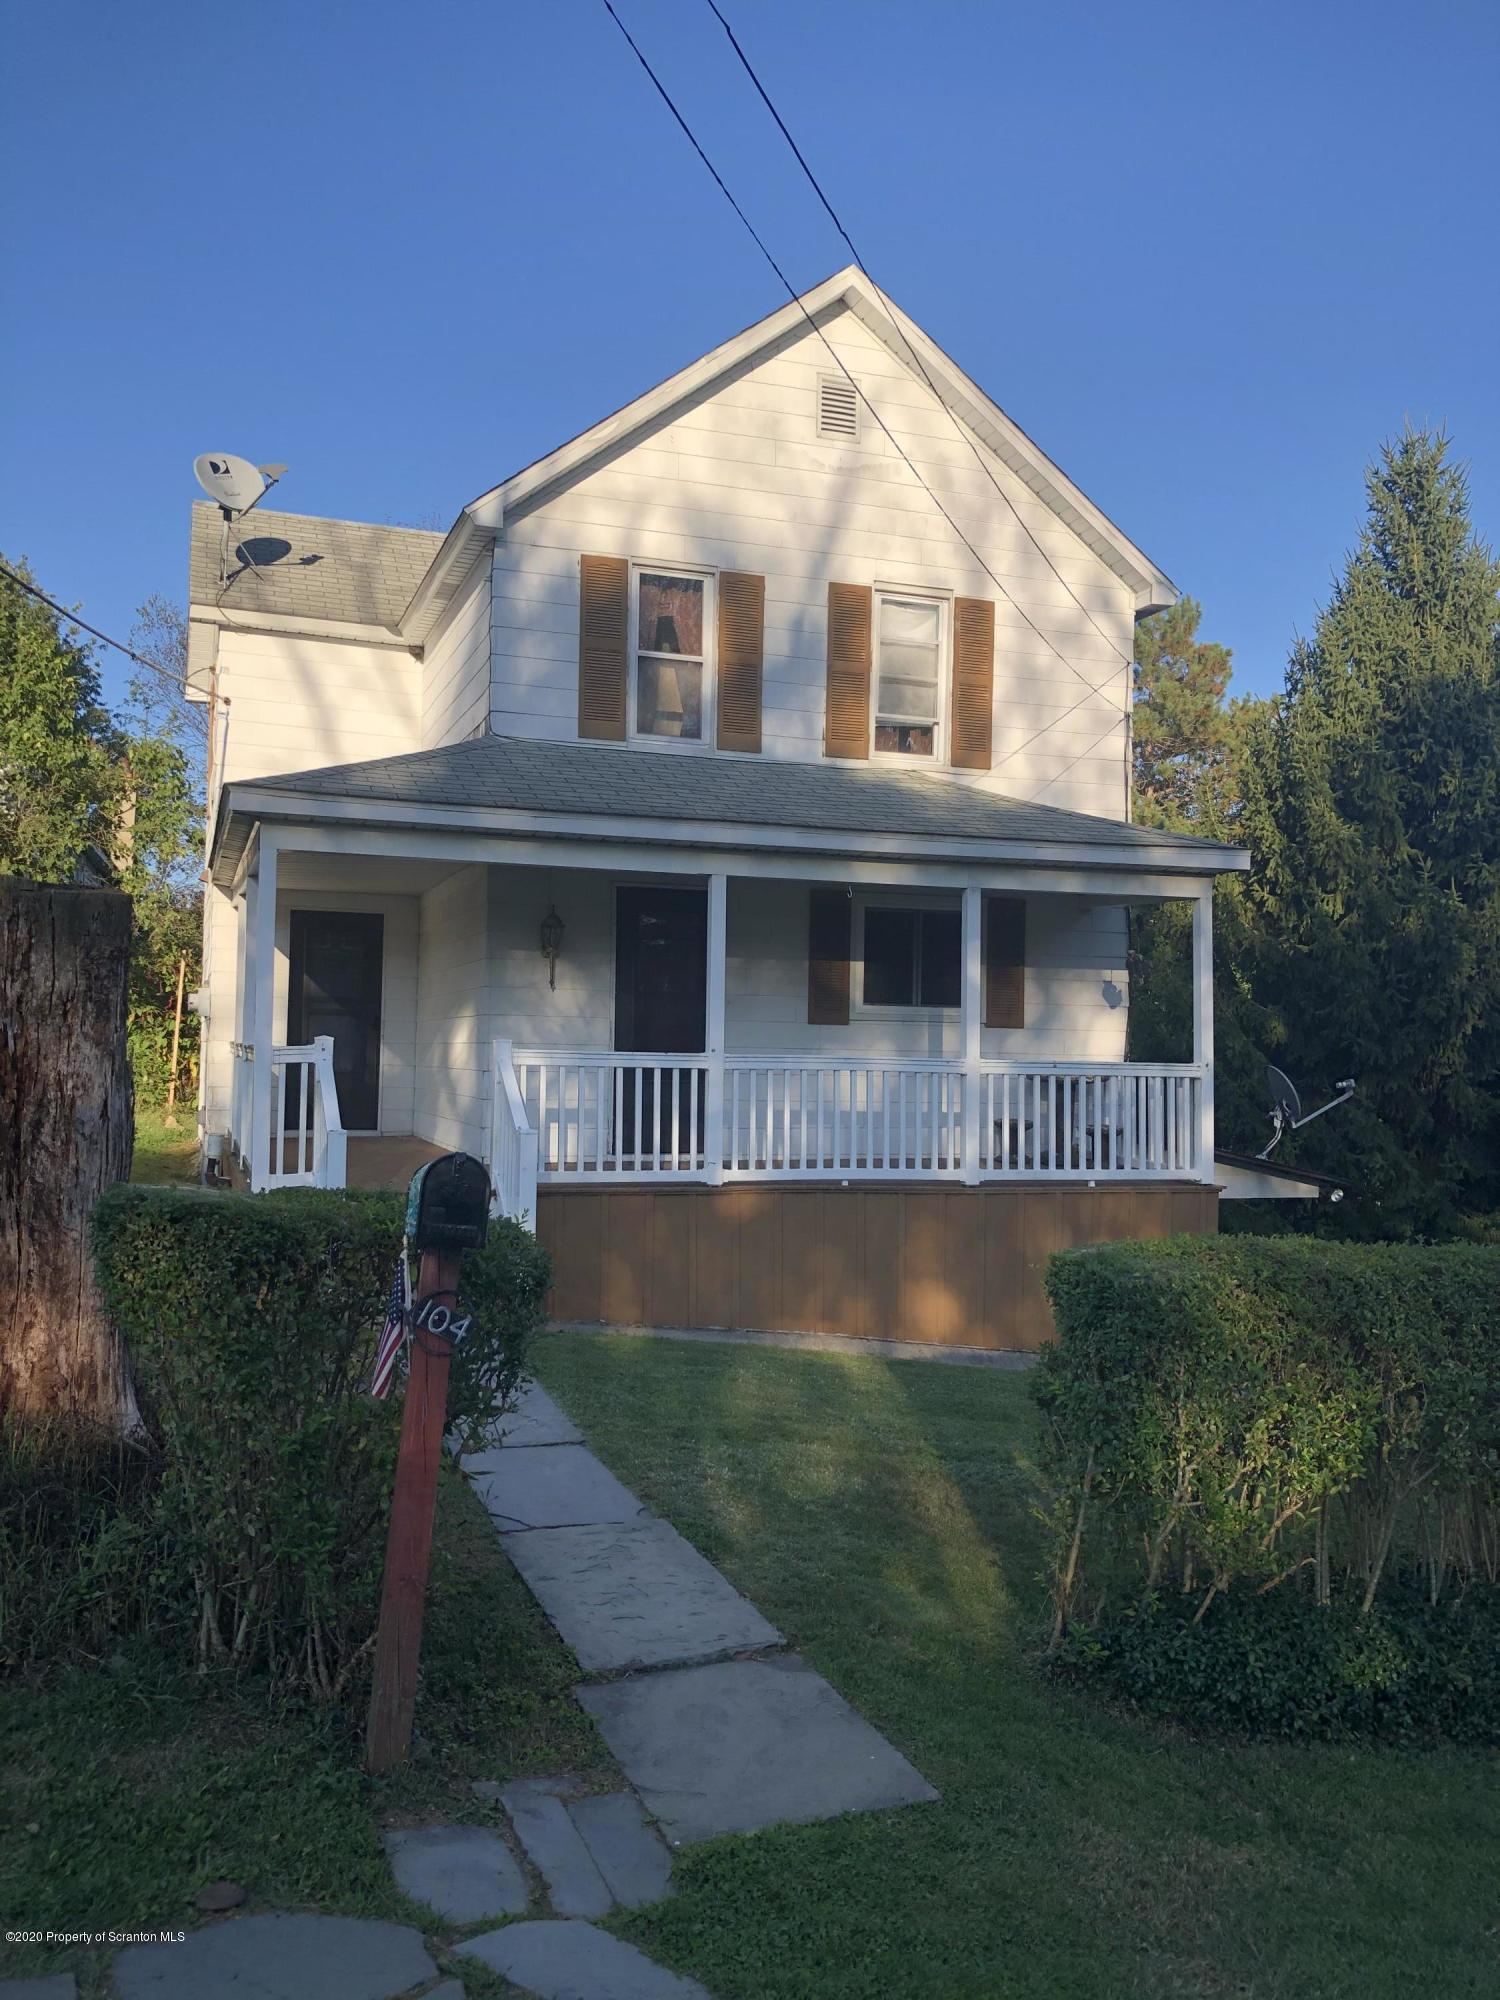 104 Front st, Forest City, Pennsylvania 18421, 4 Bedrooms Bedrooms, 7 Rooms Rooms,2 BathroomsBathrooms,Single Family,For Sale,Front,20-3806